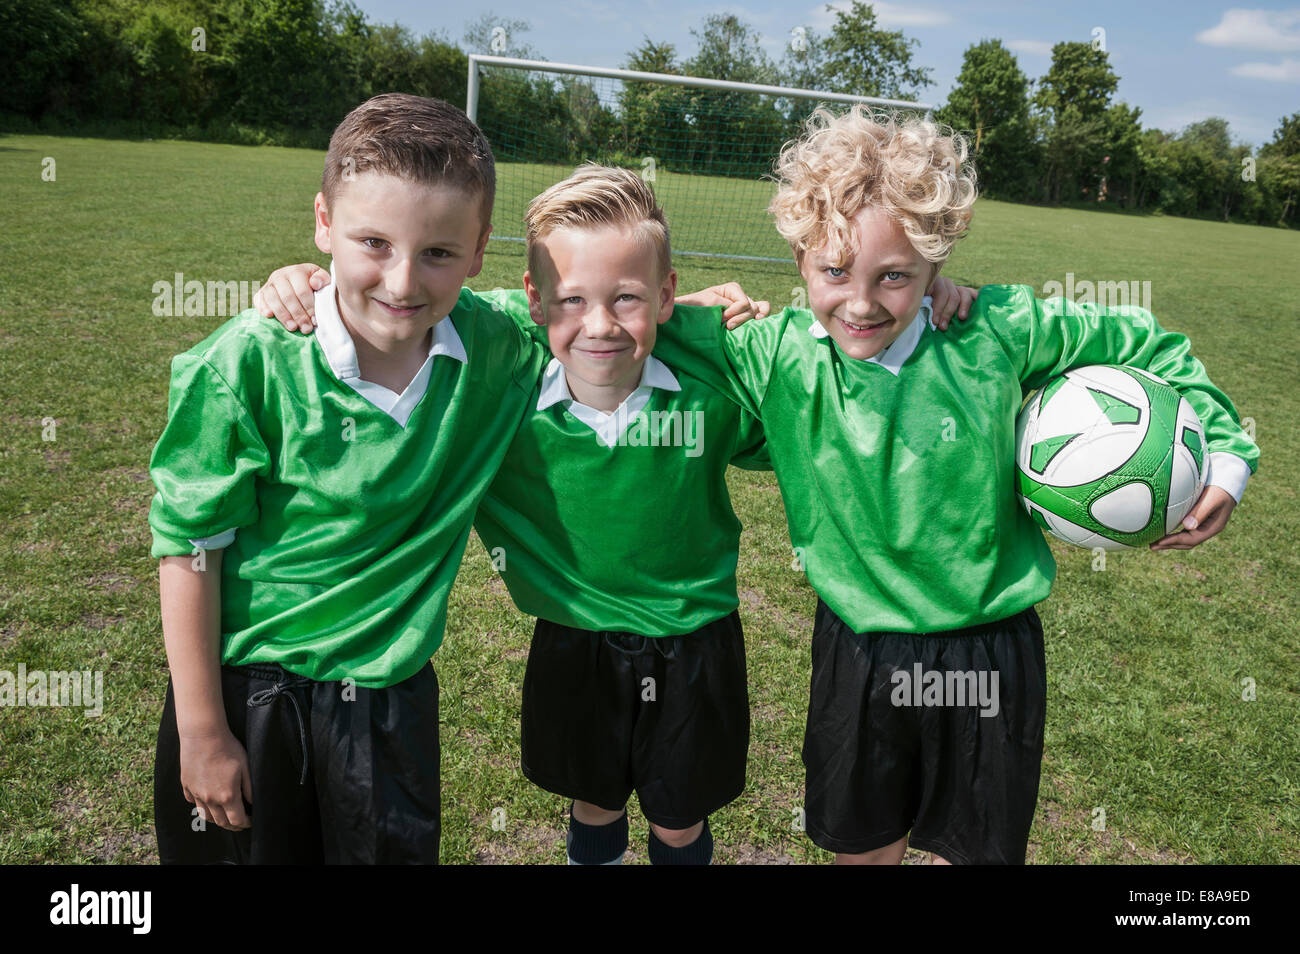 Three young soccer players posing portrait happy - Stock Image